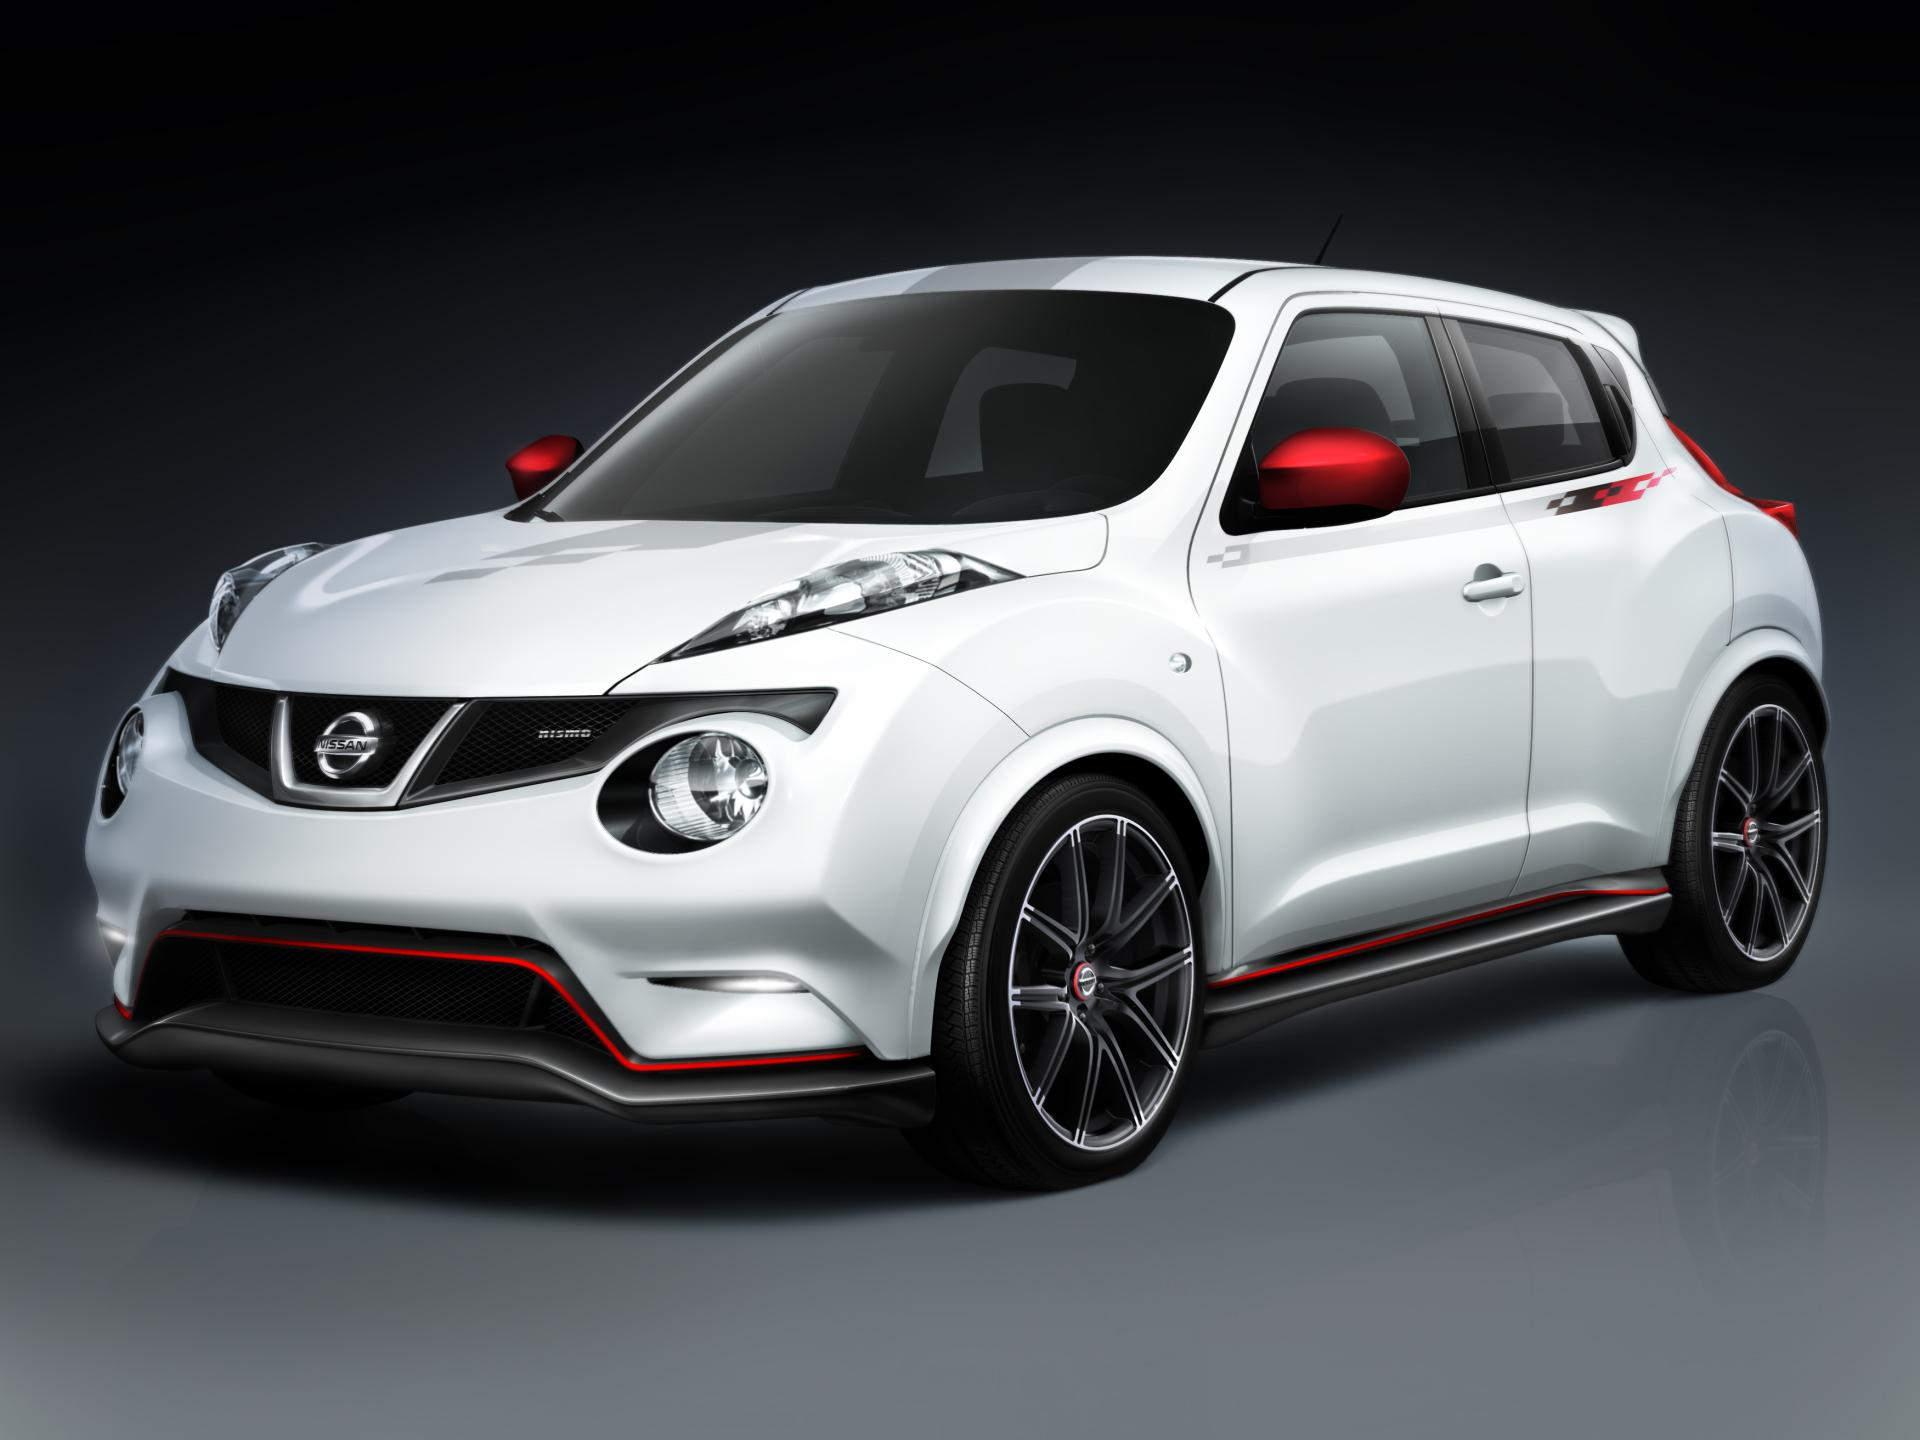 2012 nissan juke nismo concept news and information for Nissan juke reserverad